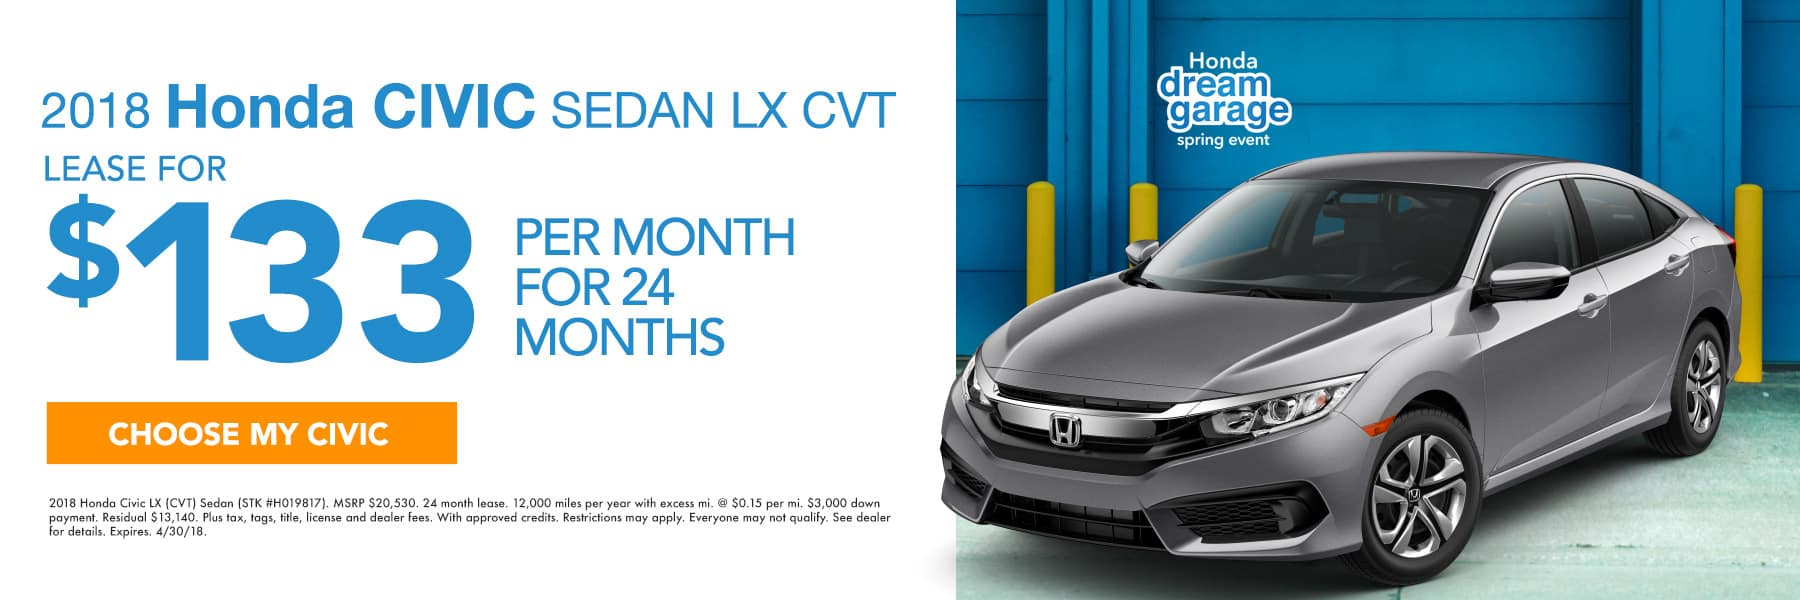 2018 Honca Civic Sedan LX CVT - Lease For $133 Per Month For 24 Months - Choose My Civic - Expires 4/30/2018